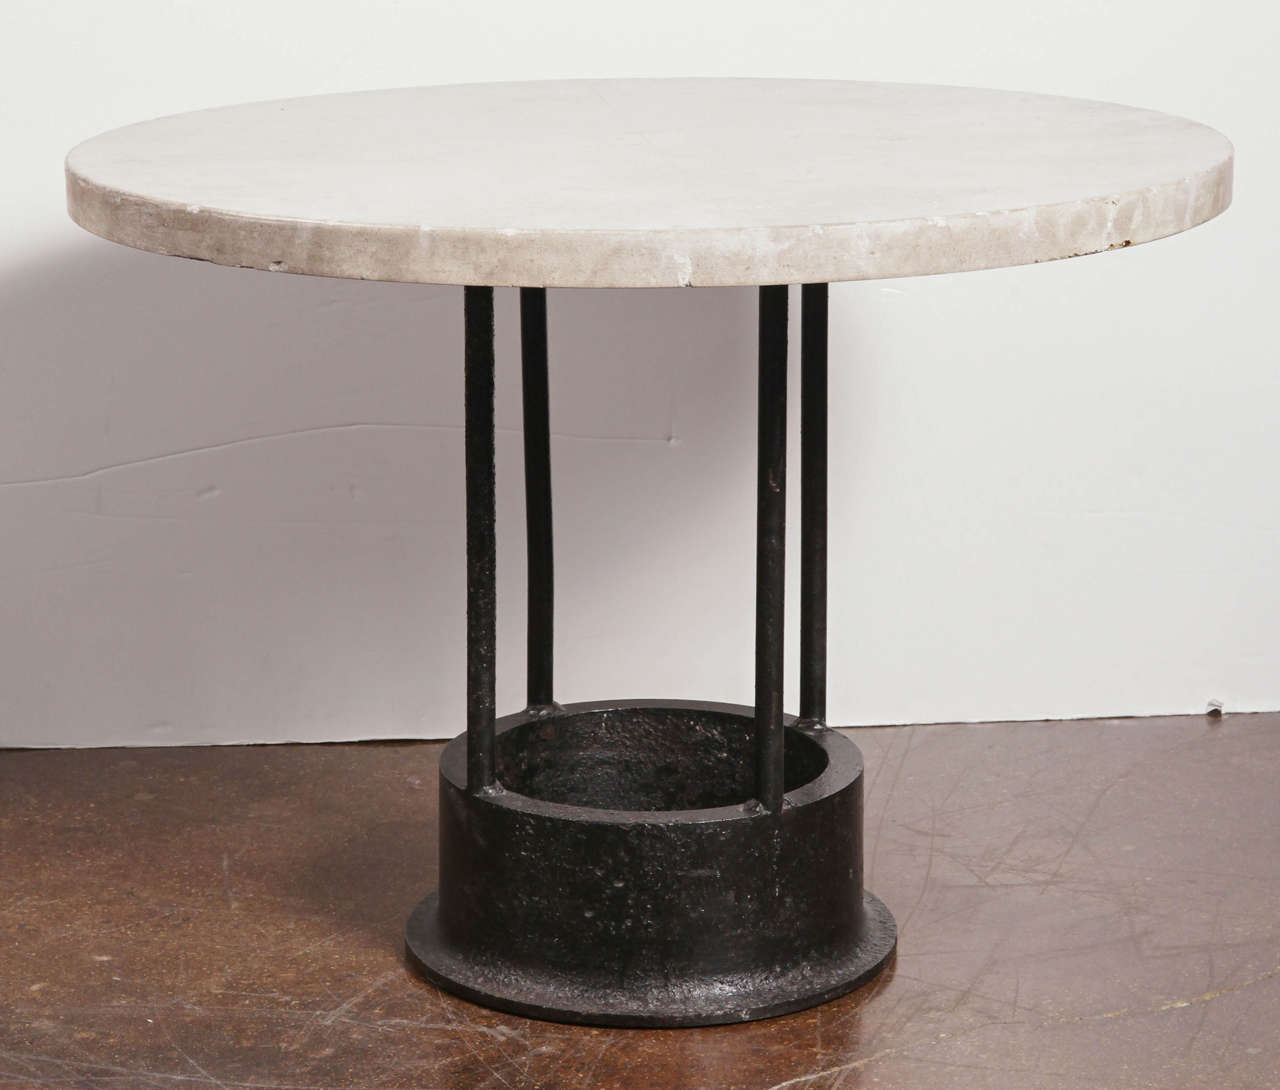 Vintage Cast Iron Tool Mount Dining Table at 1stdibs : B from 1stdibs.com size 1280 x 1090 jpeg 74kB